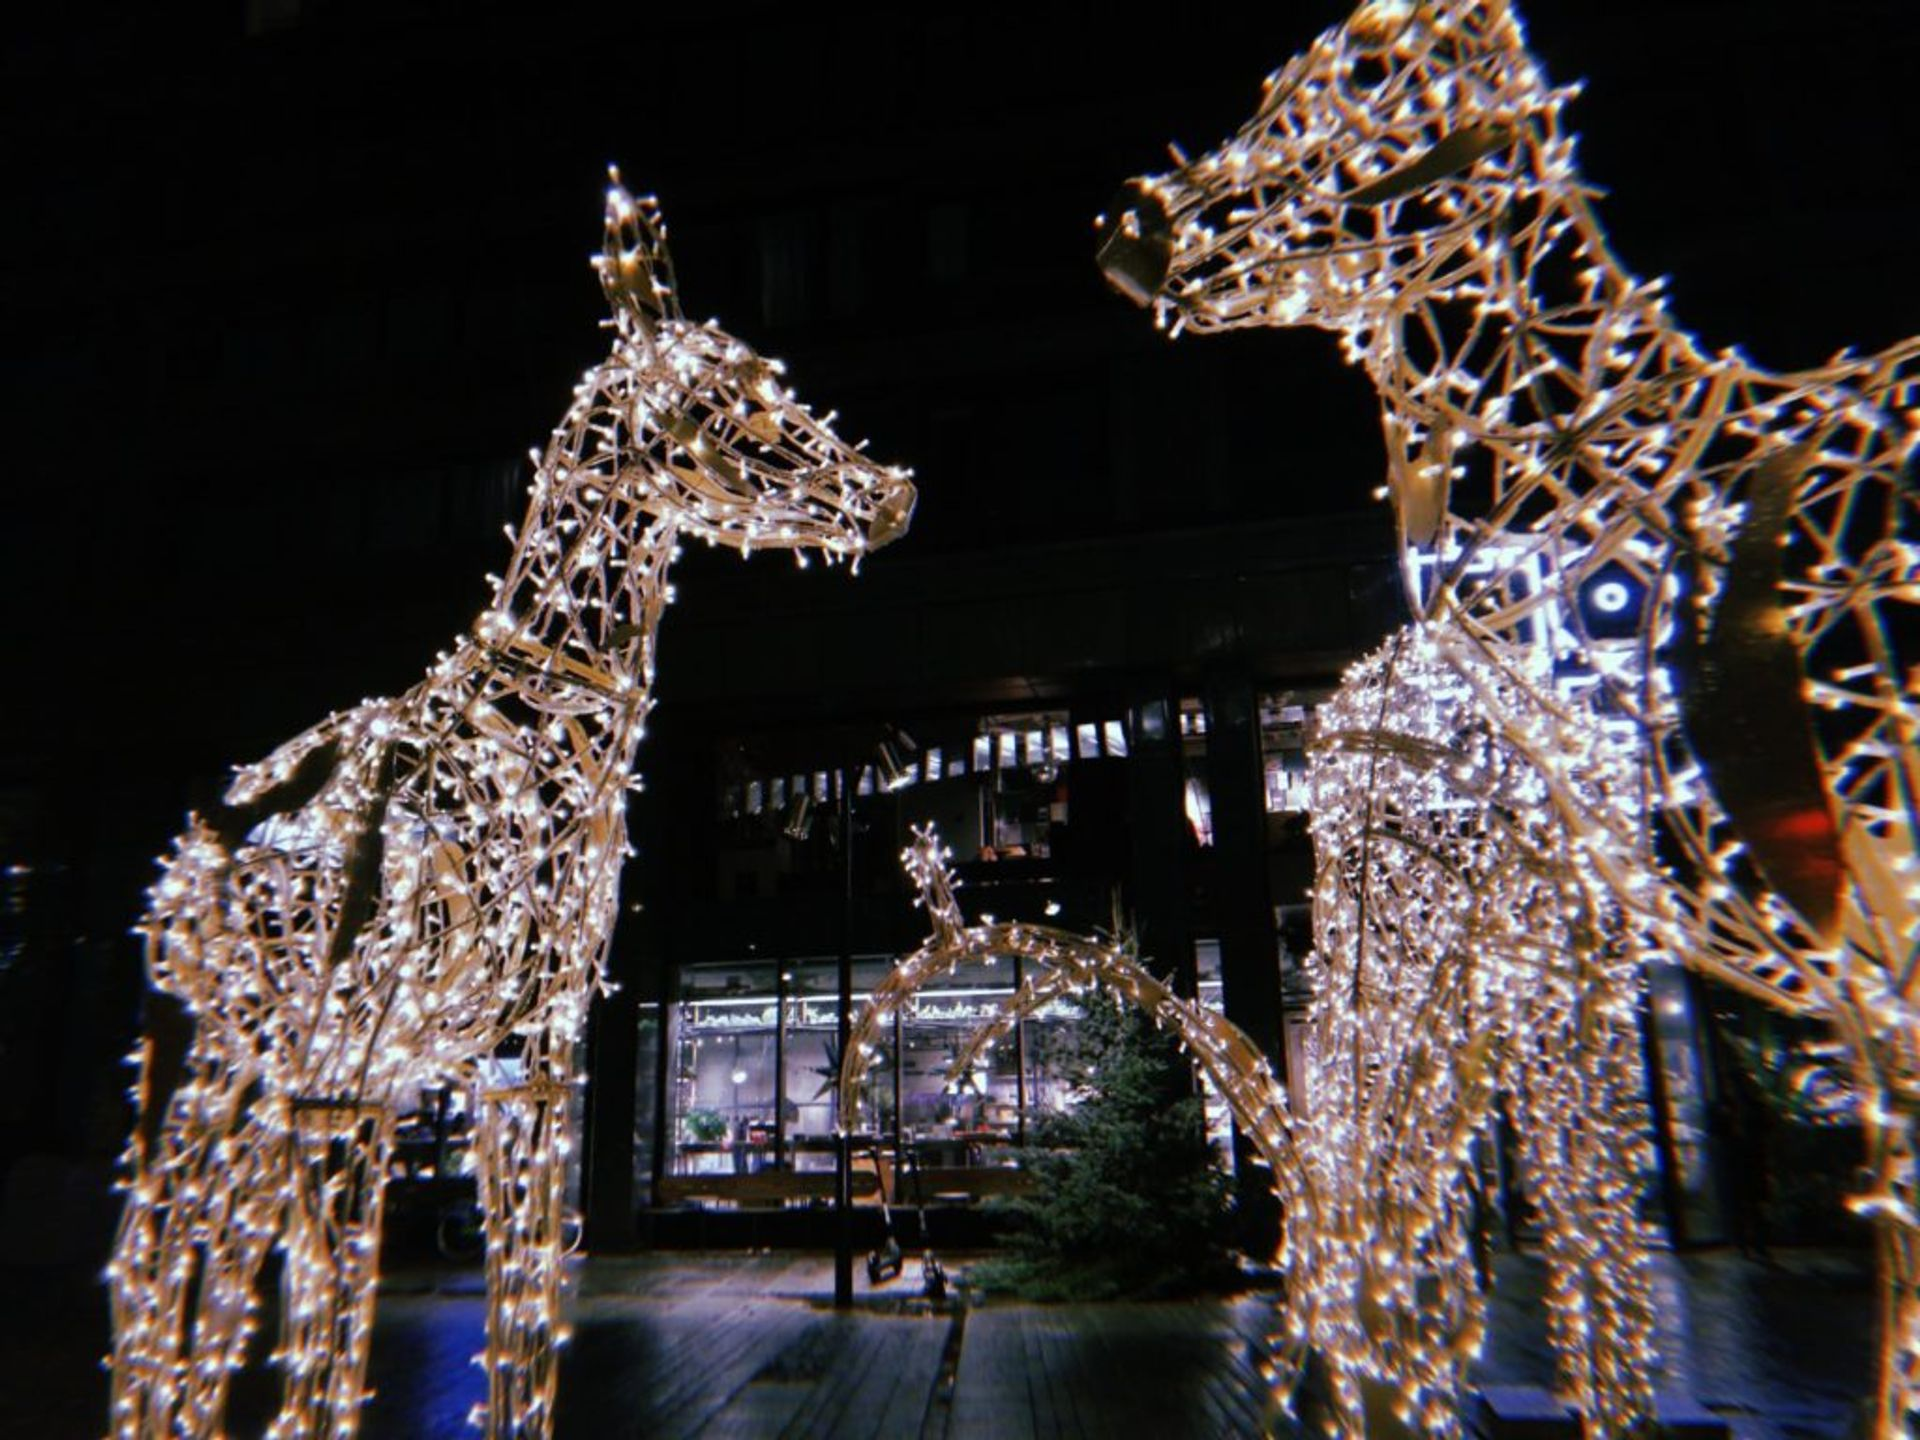 Two sculptures of deer, made from white and yellowish fairy lights, illuminated as photo was taken in the dark during the evening. A glass front building and shop window are visible in the the background